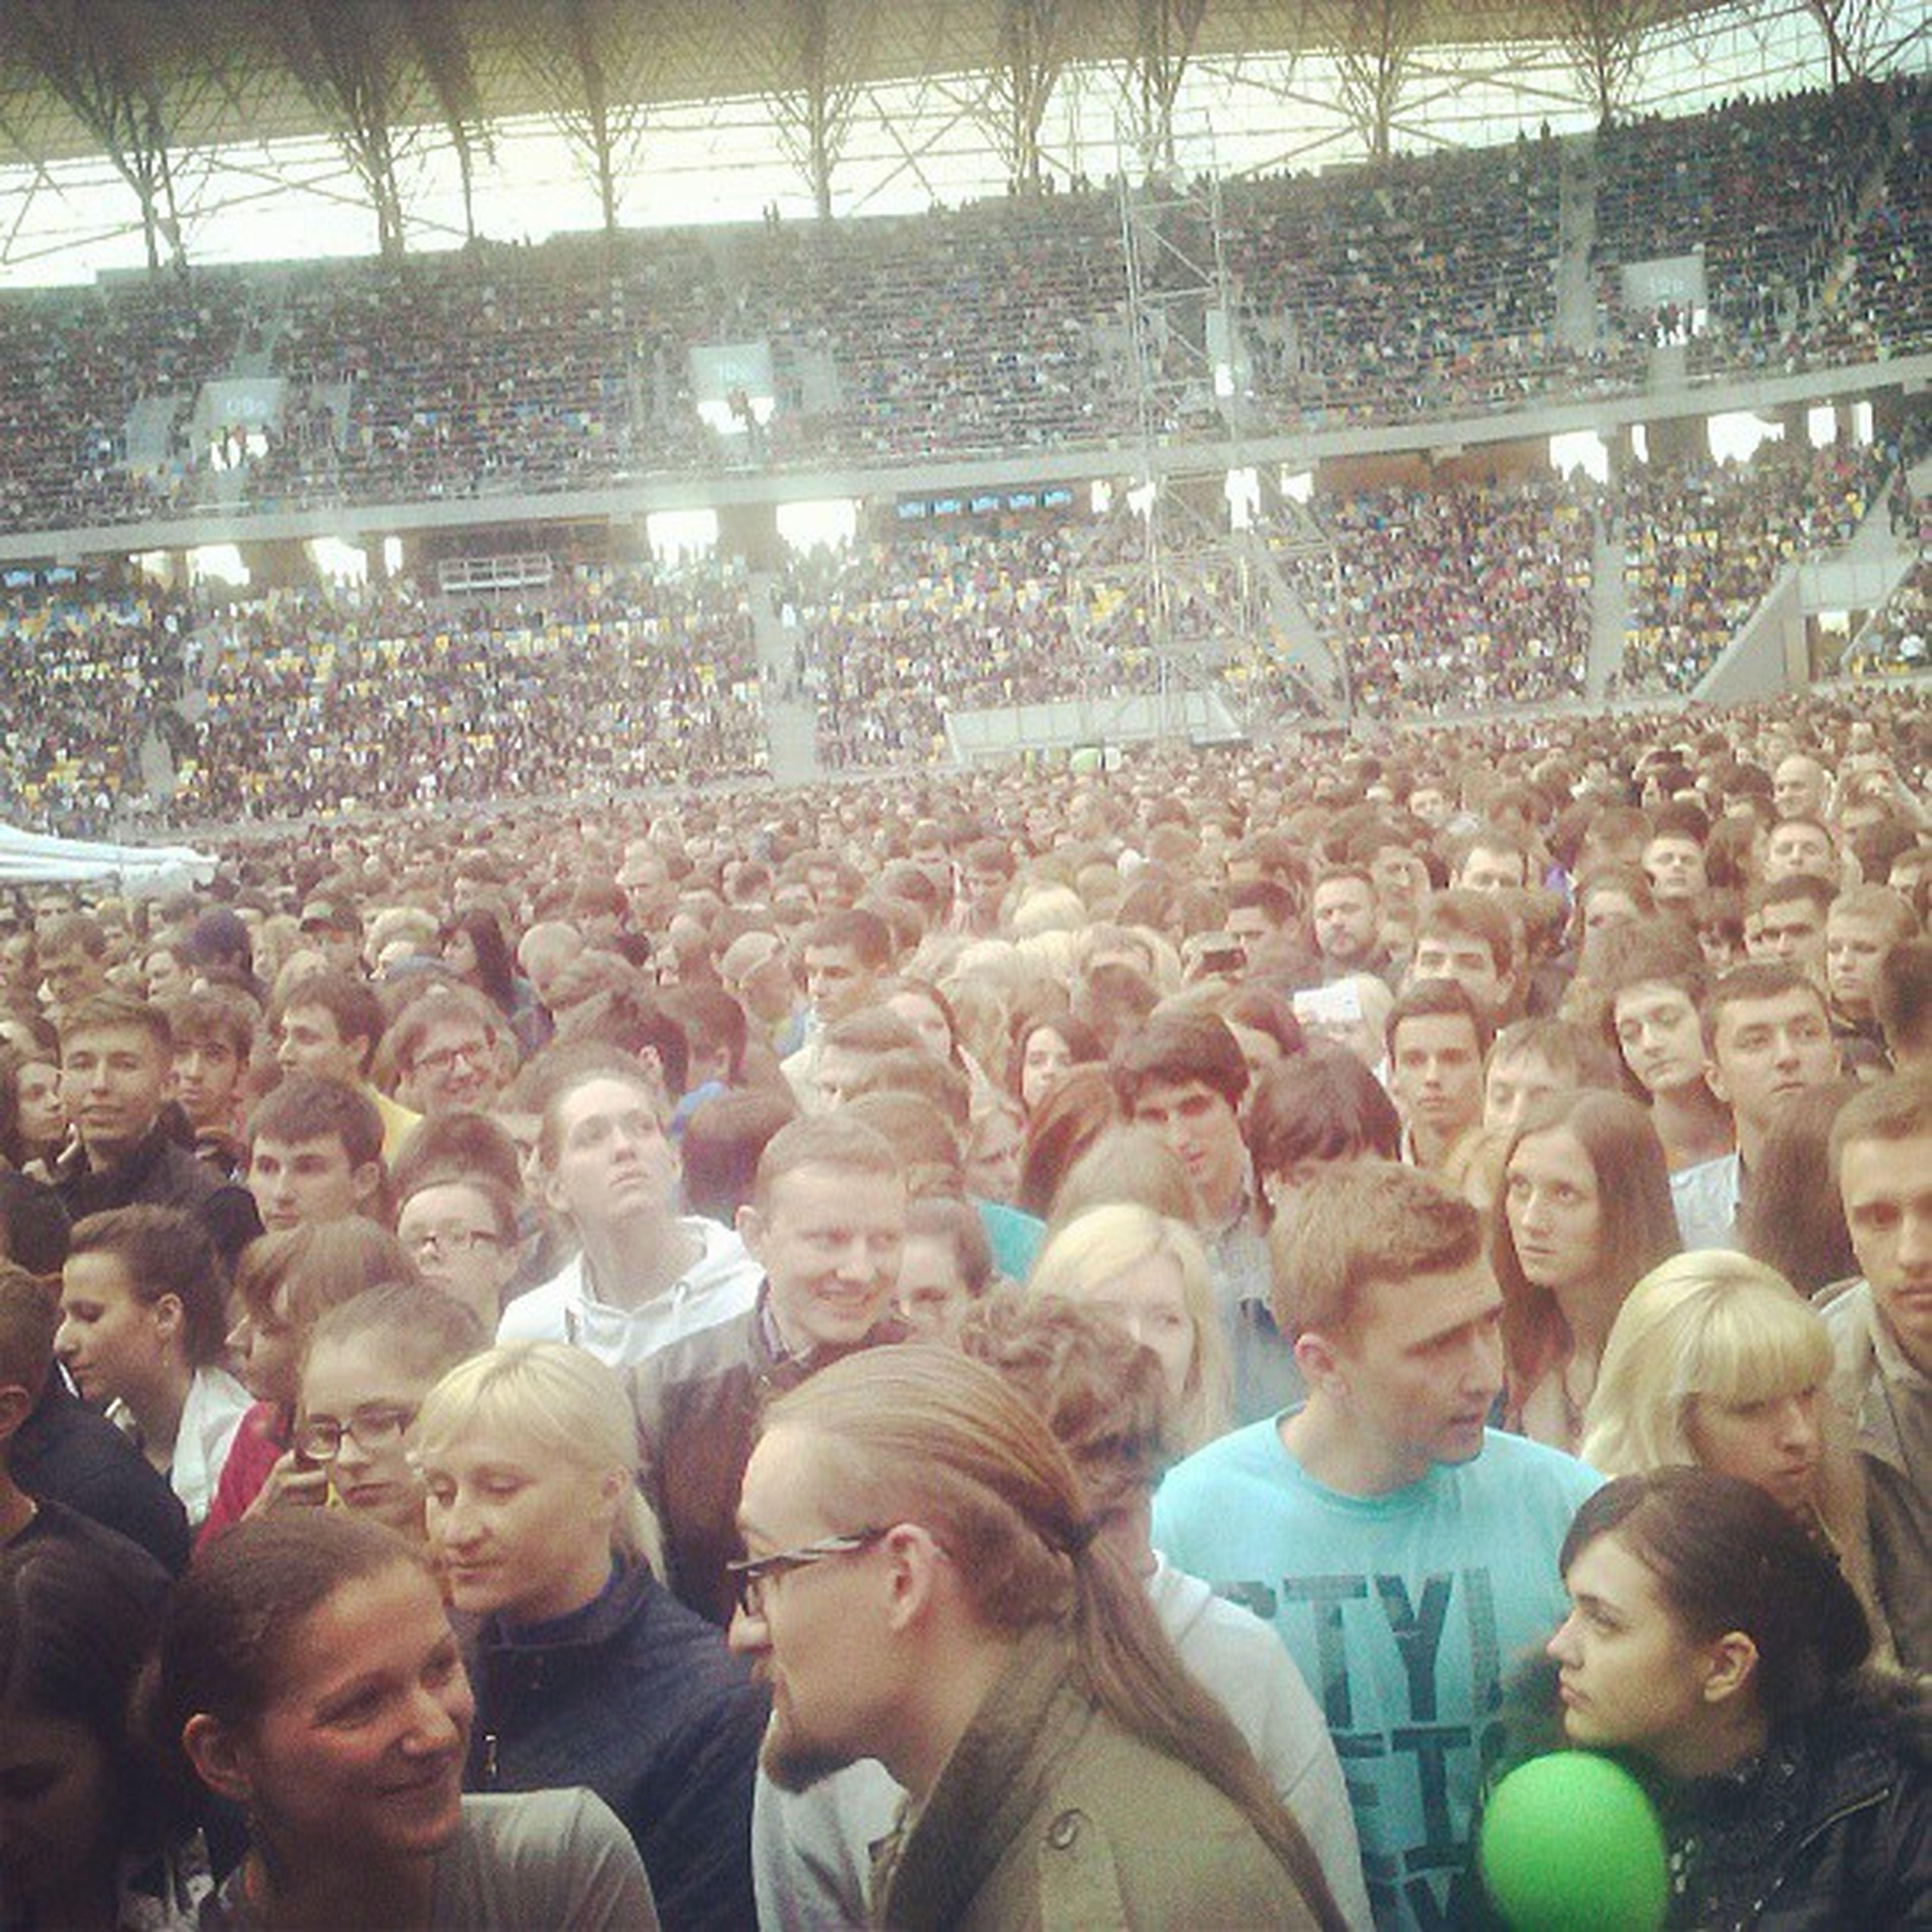 large group of people, lifestyles, crowd, leisure activity, togetherness, men, person, enjoyment, fun, illuminated, celebration, crowded, spectator, event, standing, mixed age range, high angle view, enjoying